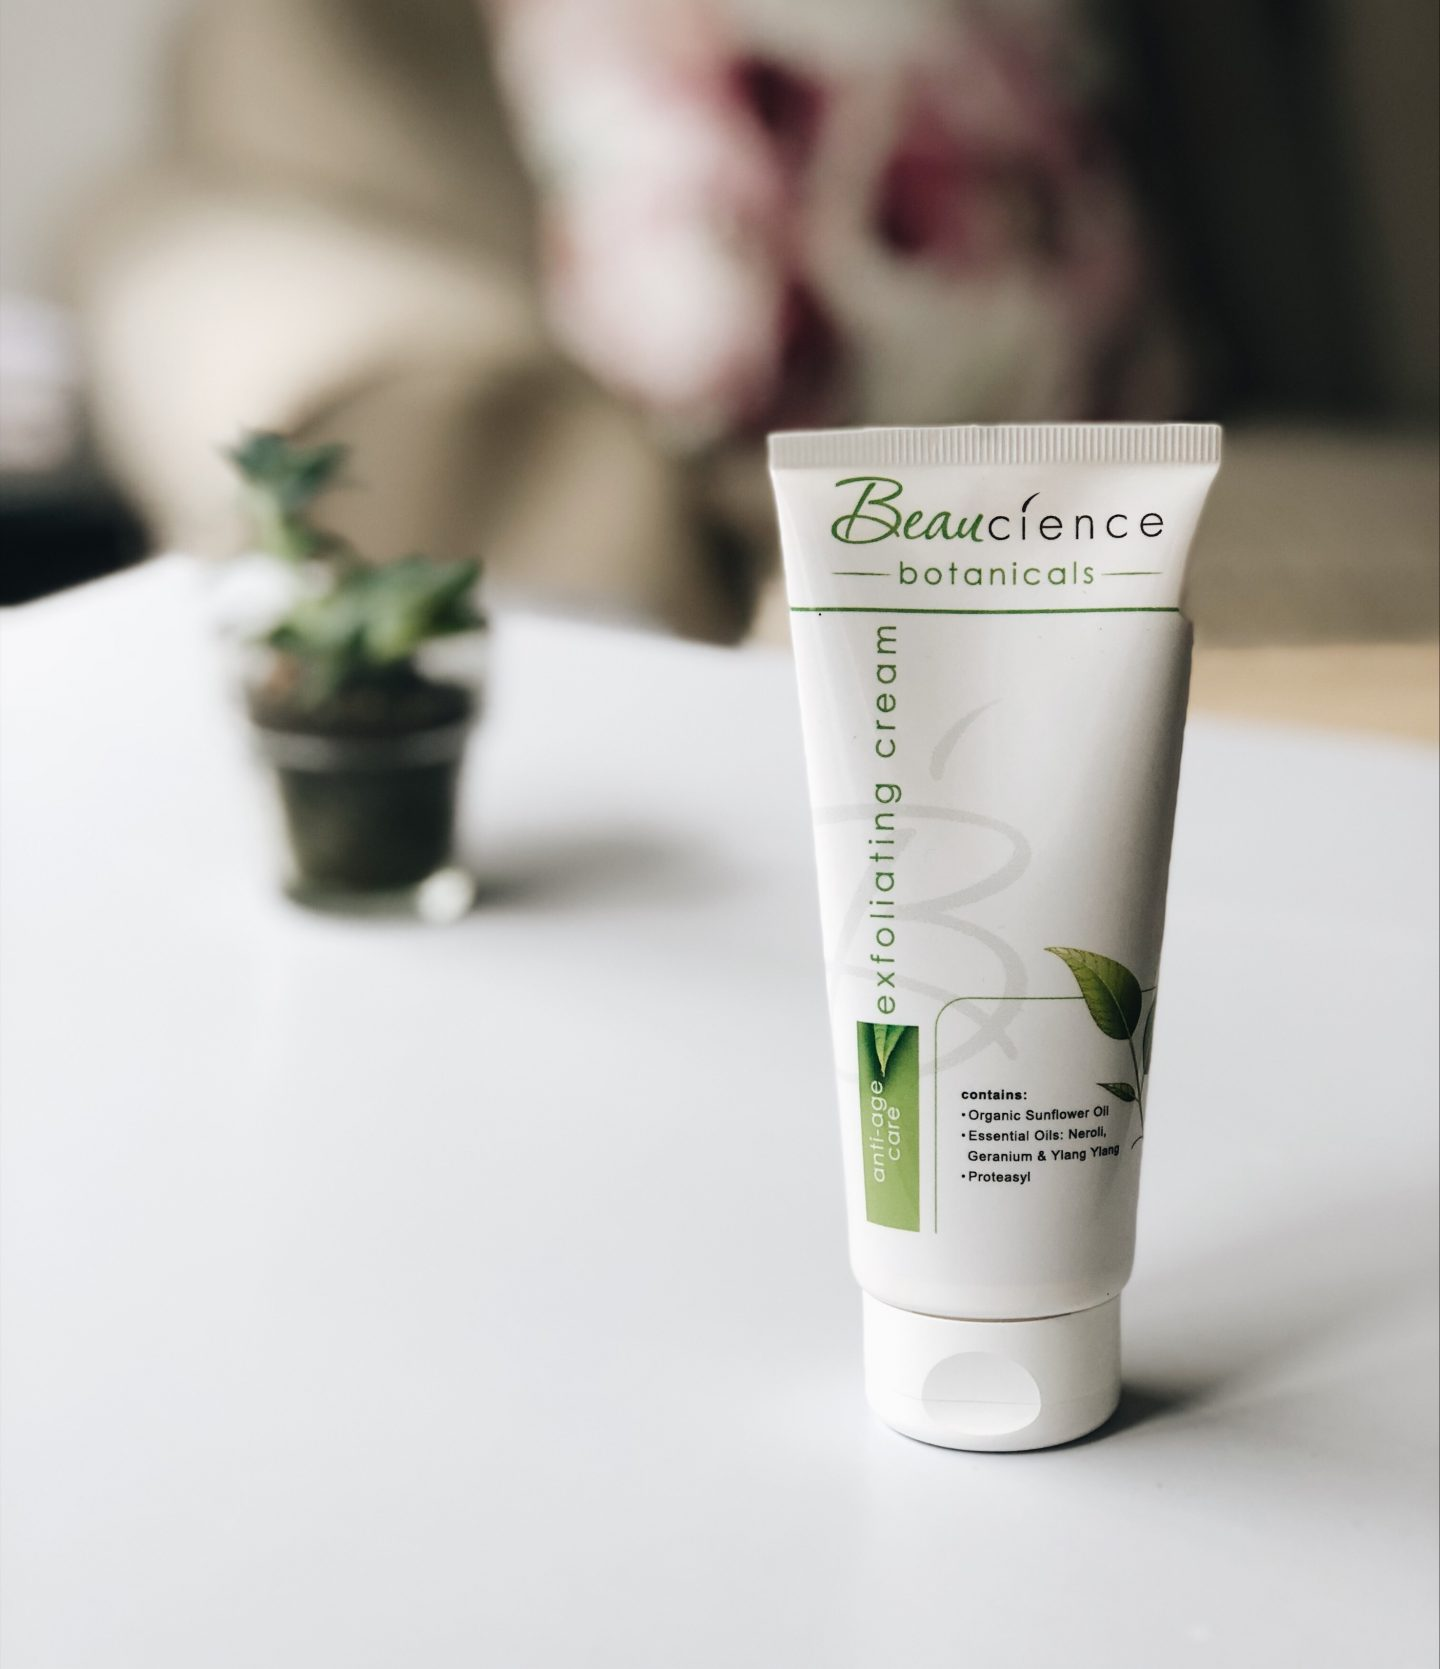 Affordable beauty products south africa topknotch blog beaucience botanical exfoliating cream